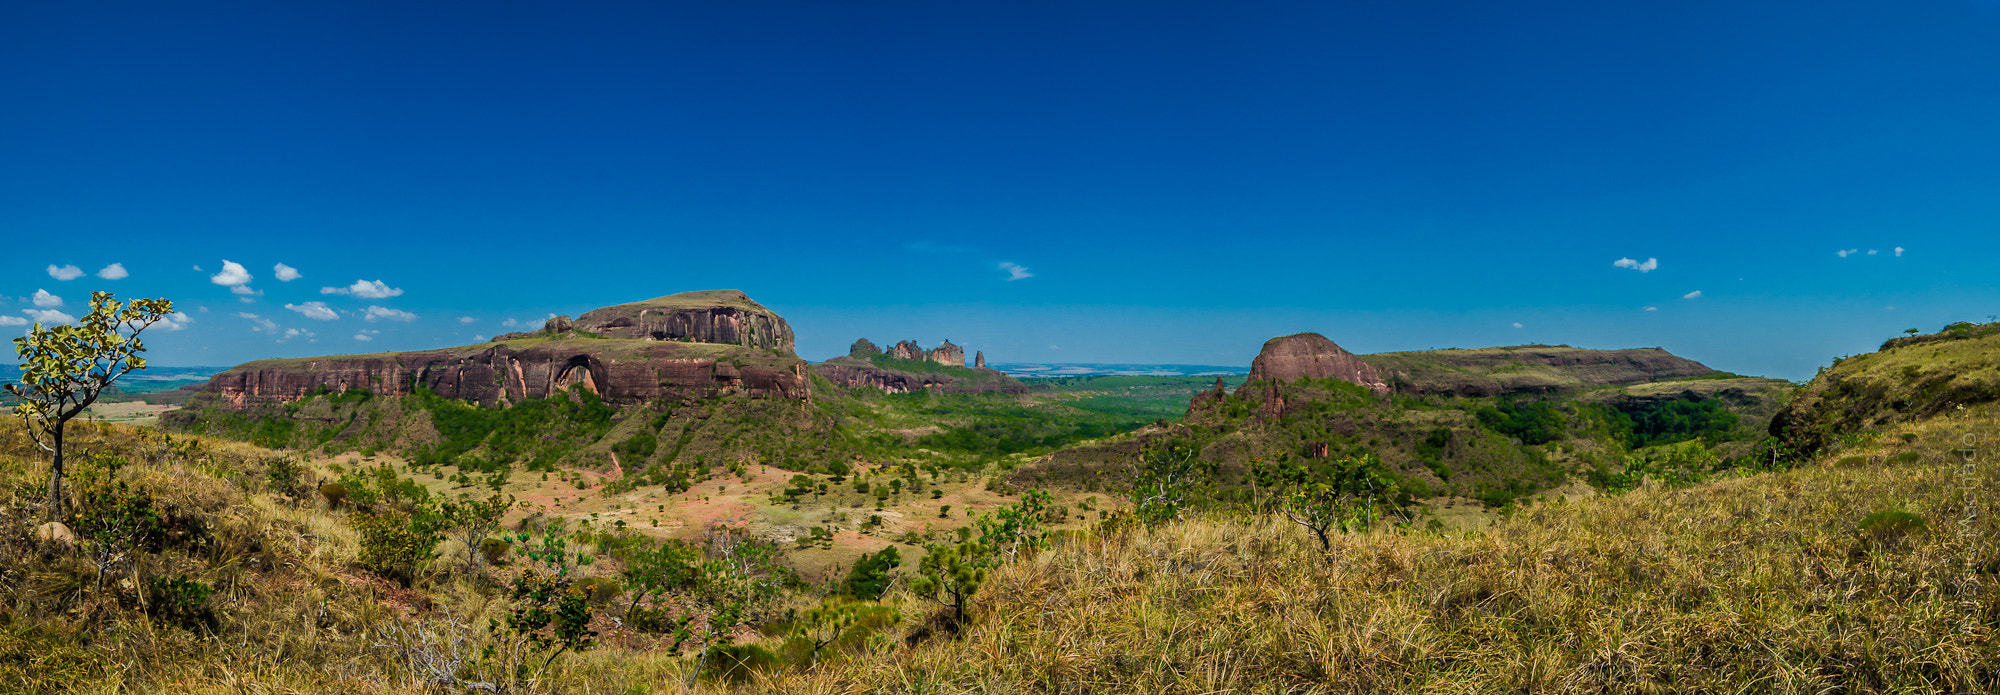 Photograph Panoramic of Giant´s Mountain by Antonio Machado on 500px